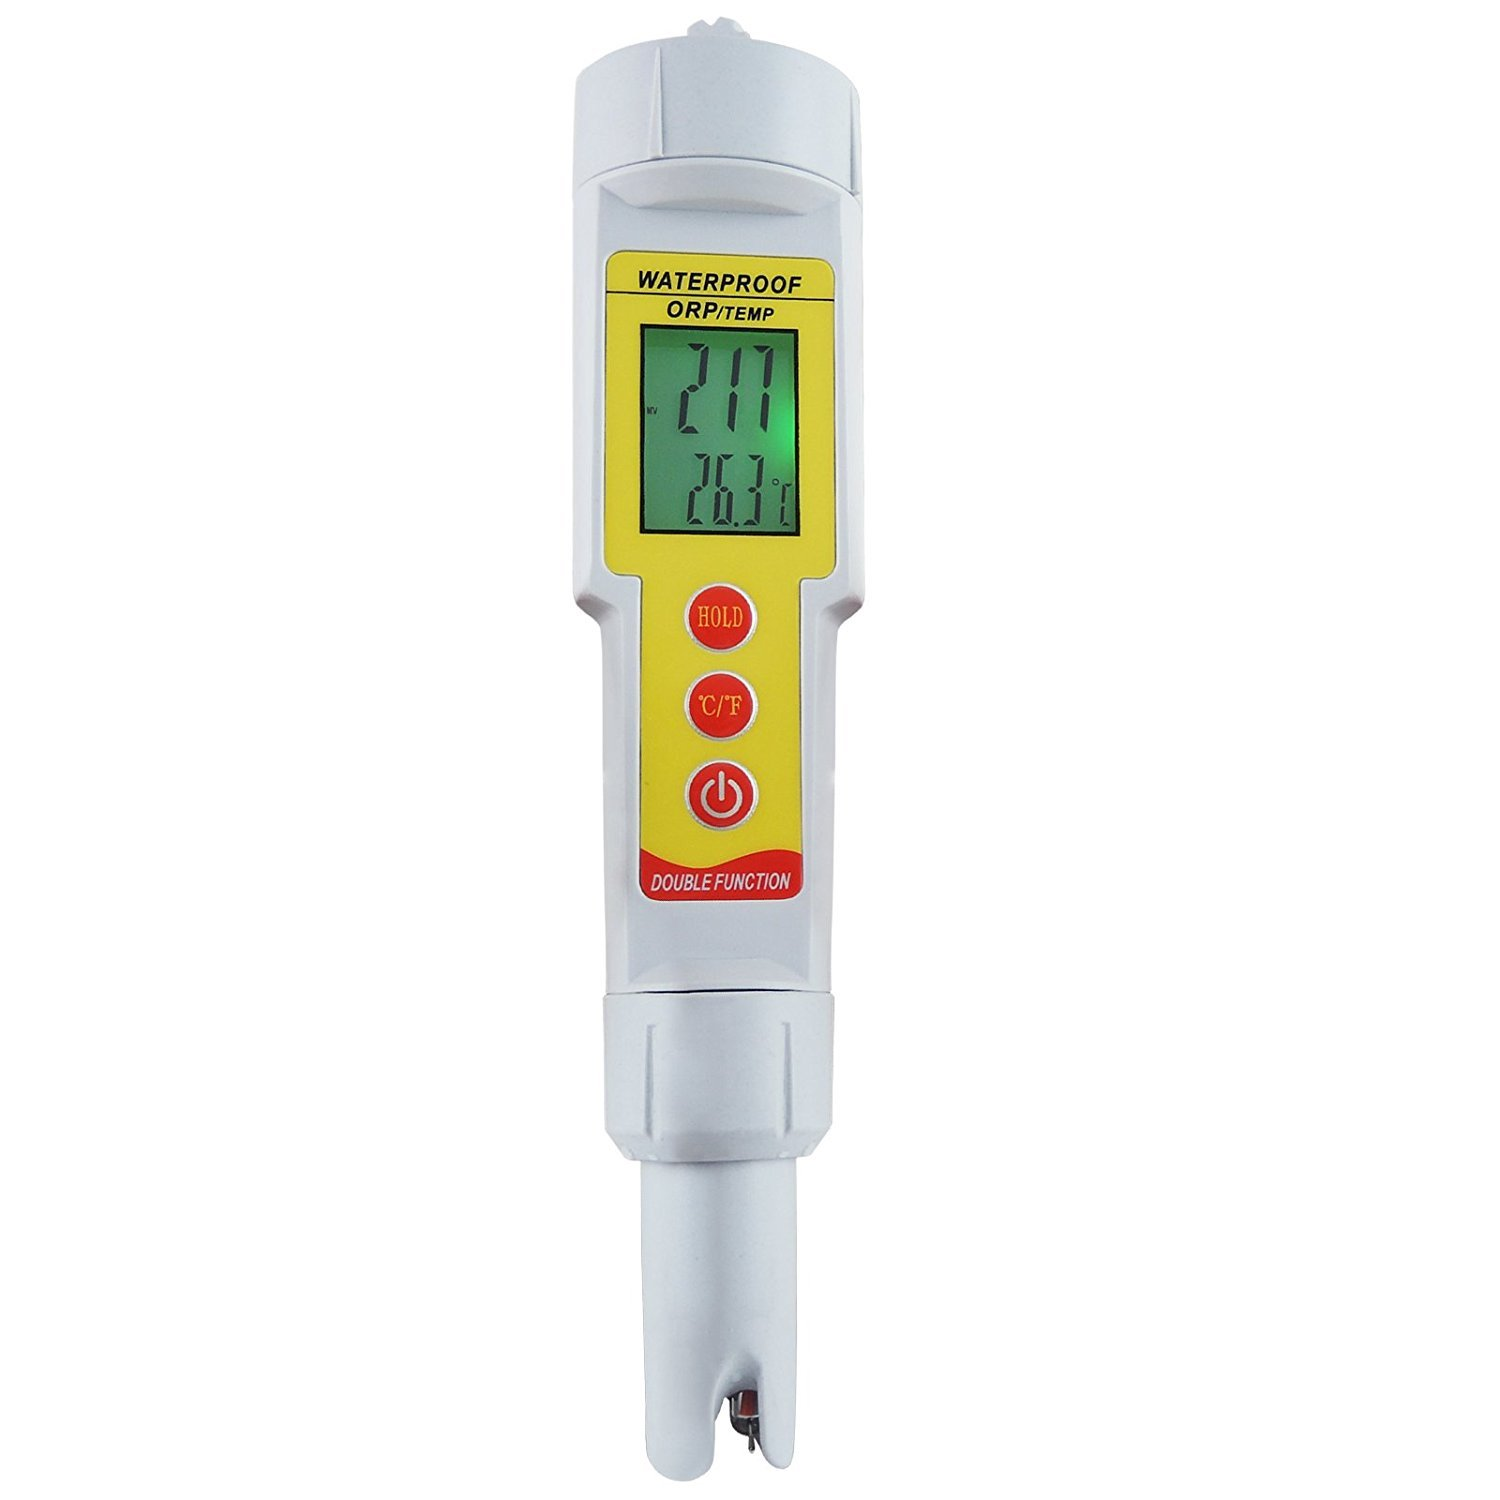 Gain Express 2-in-1 Pen Type ORP & Temperature (°C/ °F) Meter Thermometer Water Quality Tester IP65 Waterproof Level by Gain Express